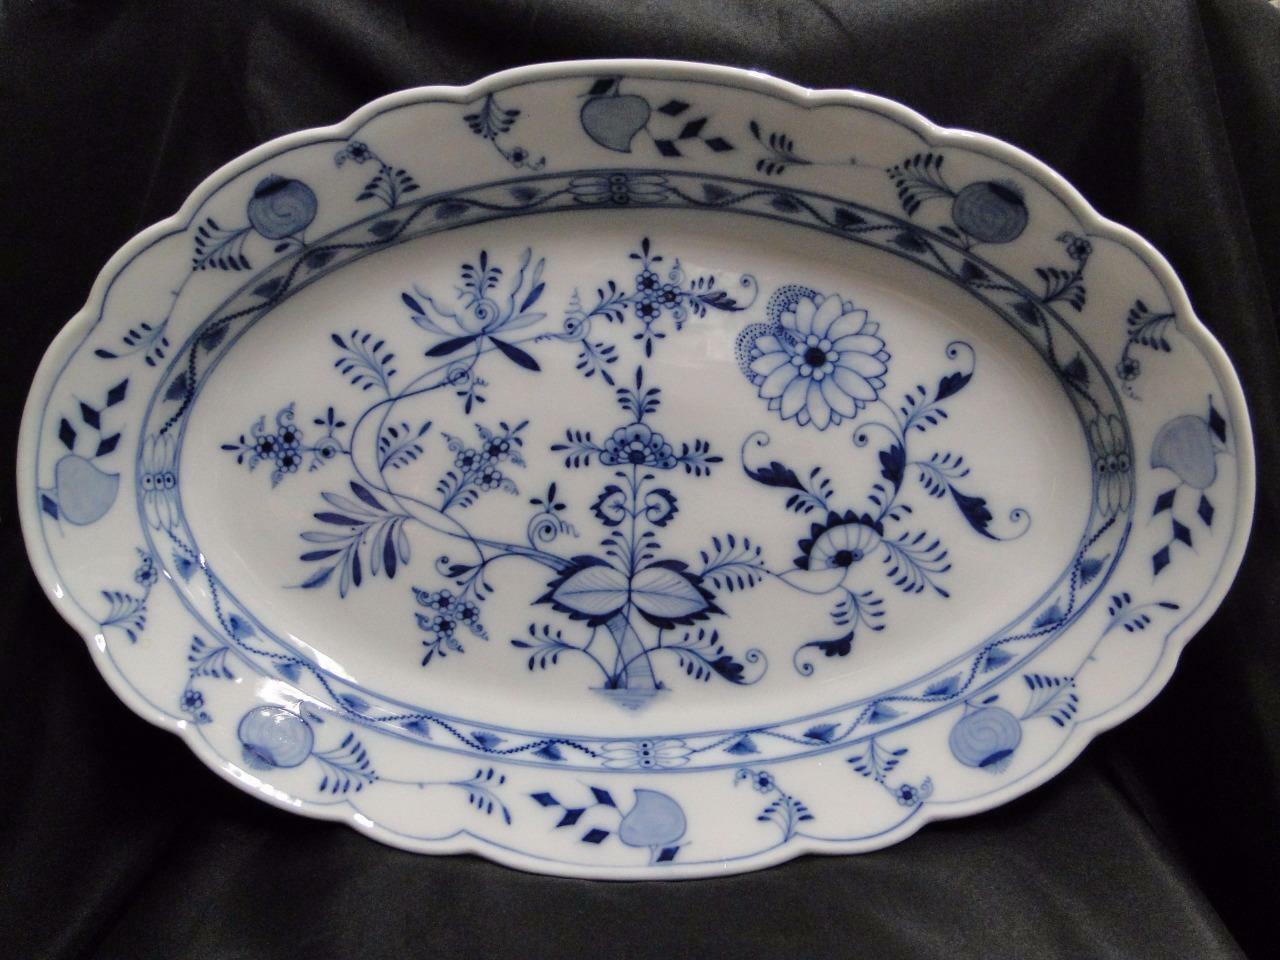 Teichert Meissen Blue Onion, Oval Mark: Oval Serving Platter AS IS 19""